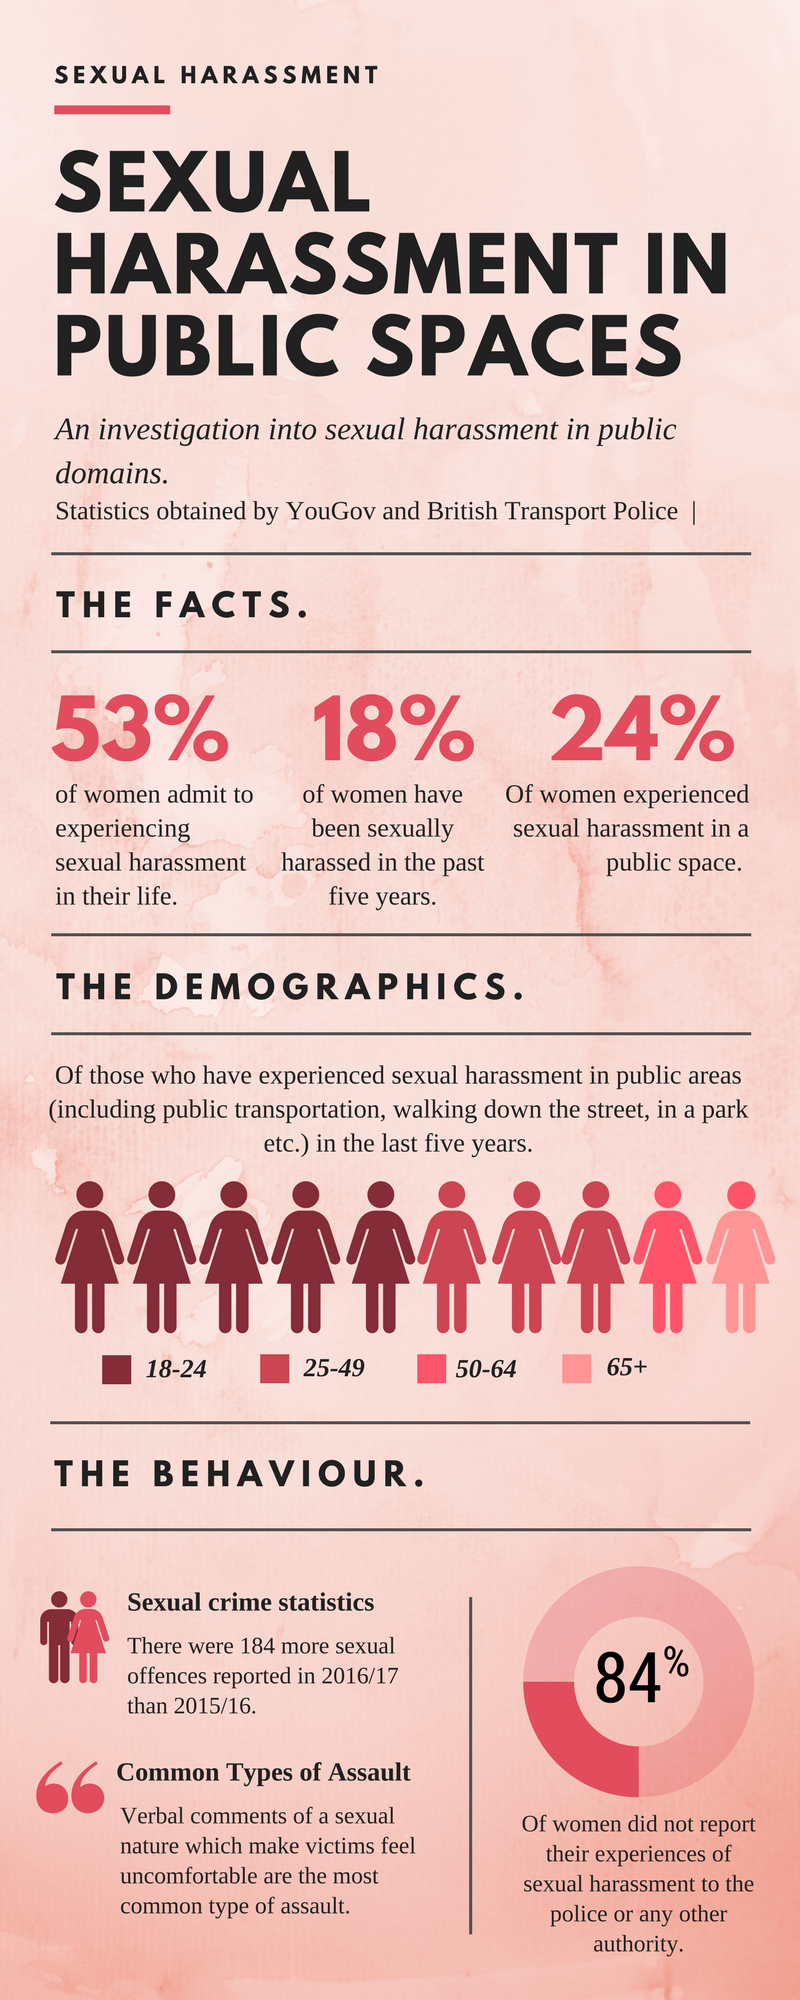 Image 5 - Sexual Harassment Infographic A.png